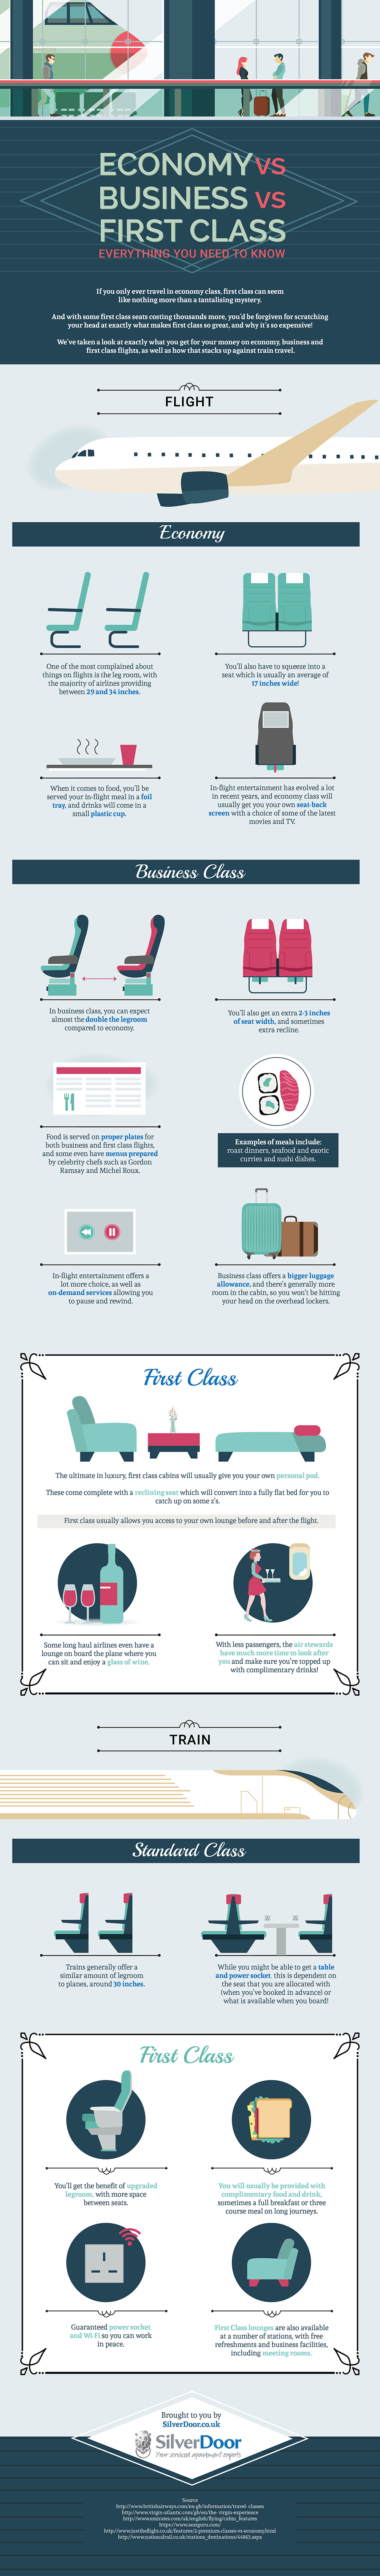 Different Classes of Air and Train Travel: How They Stack Up - Infographic